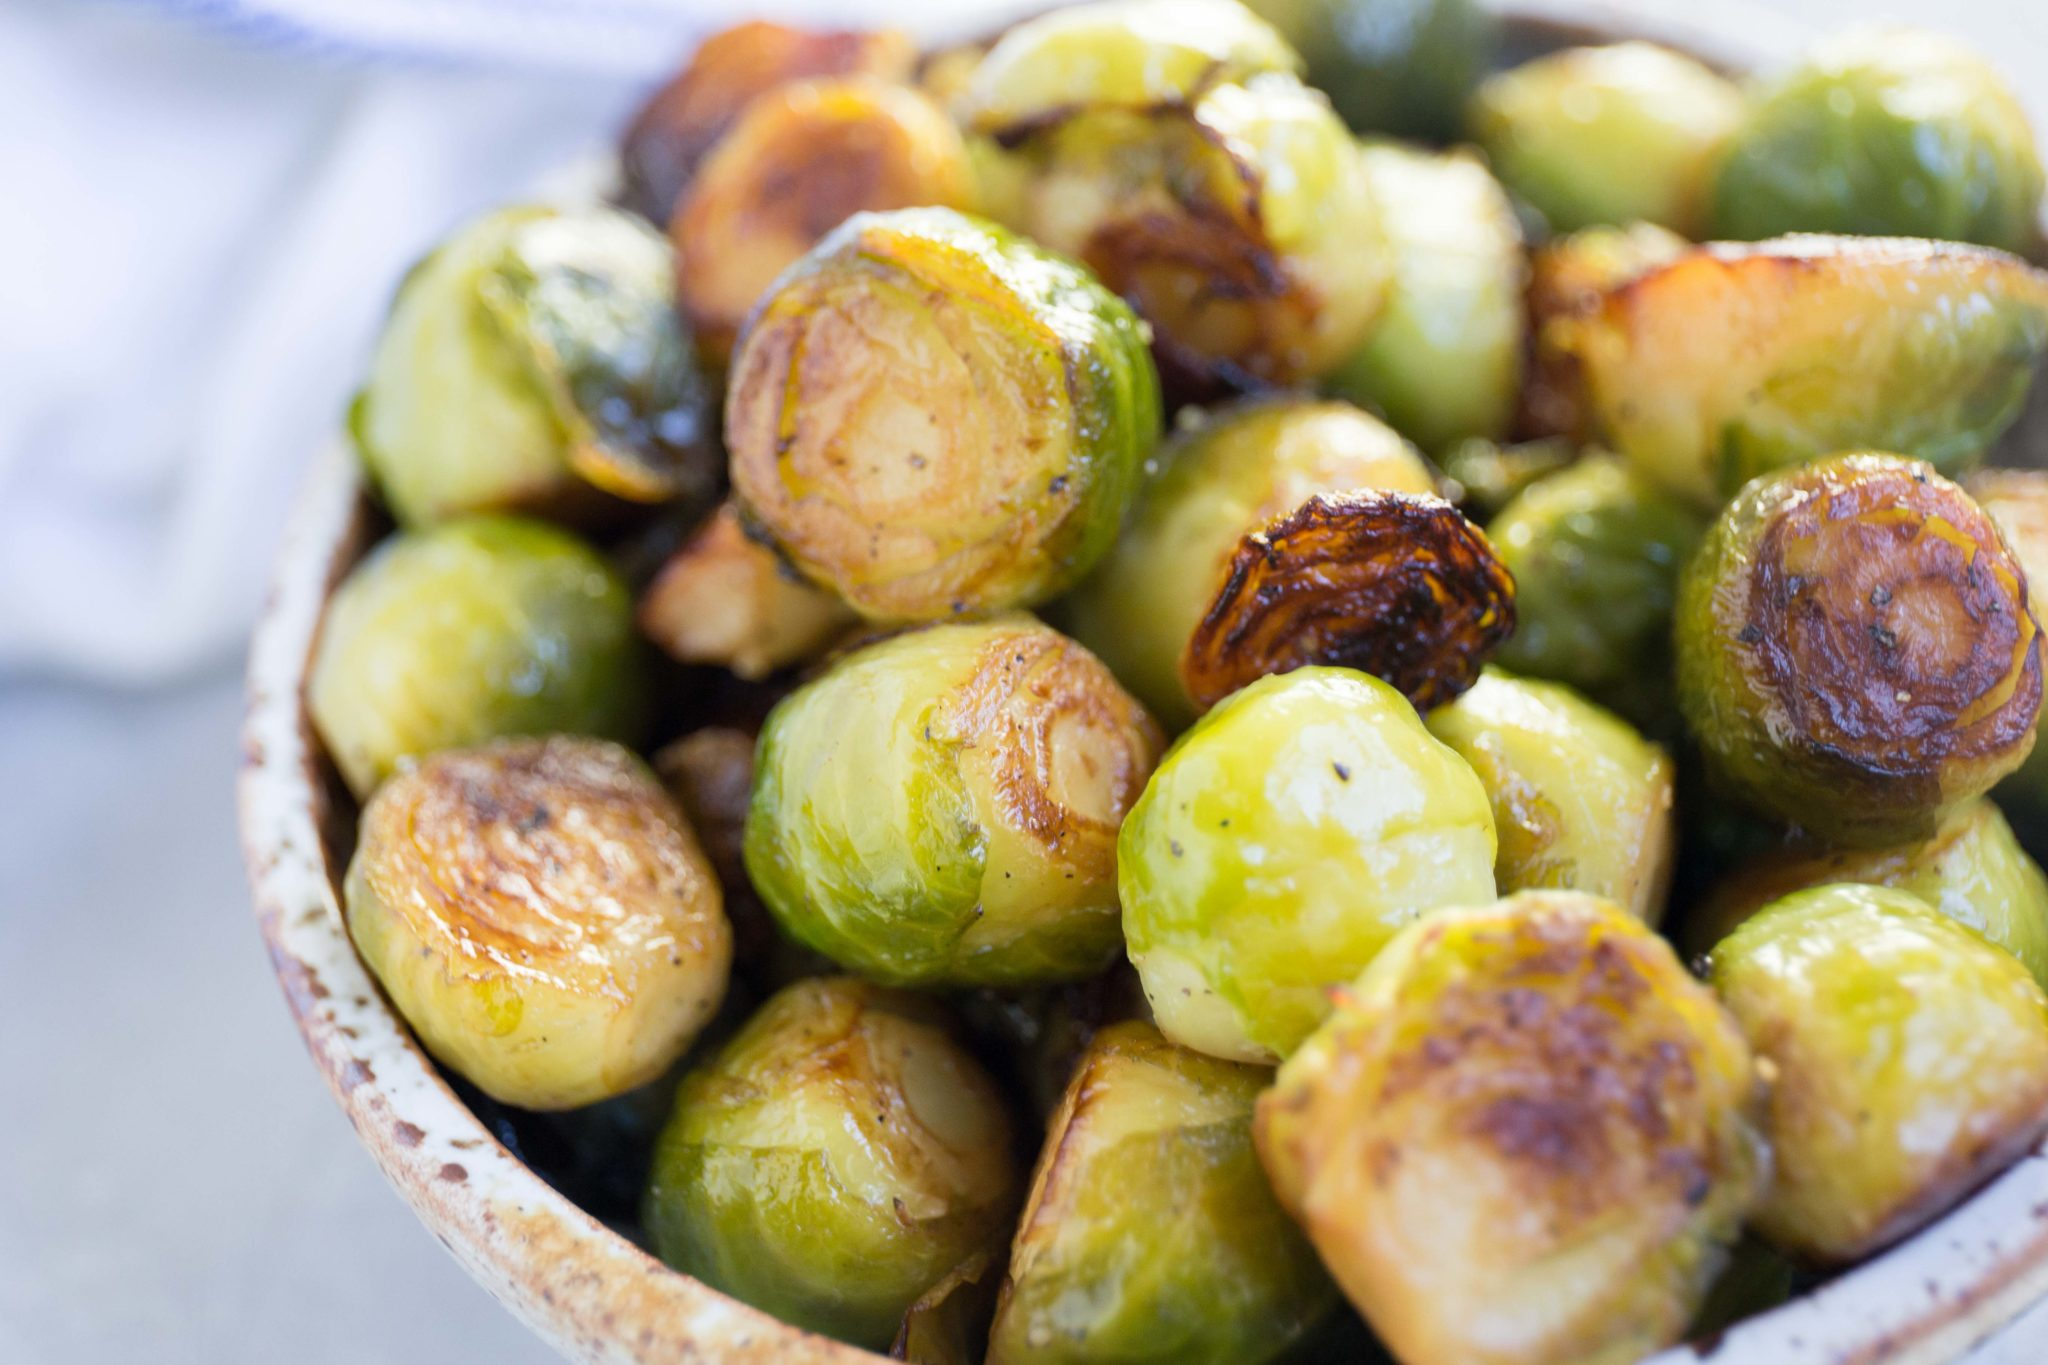 The Best Way To Cook Brussels Sprouts